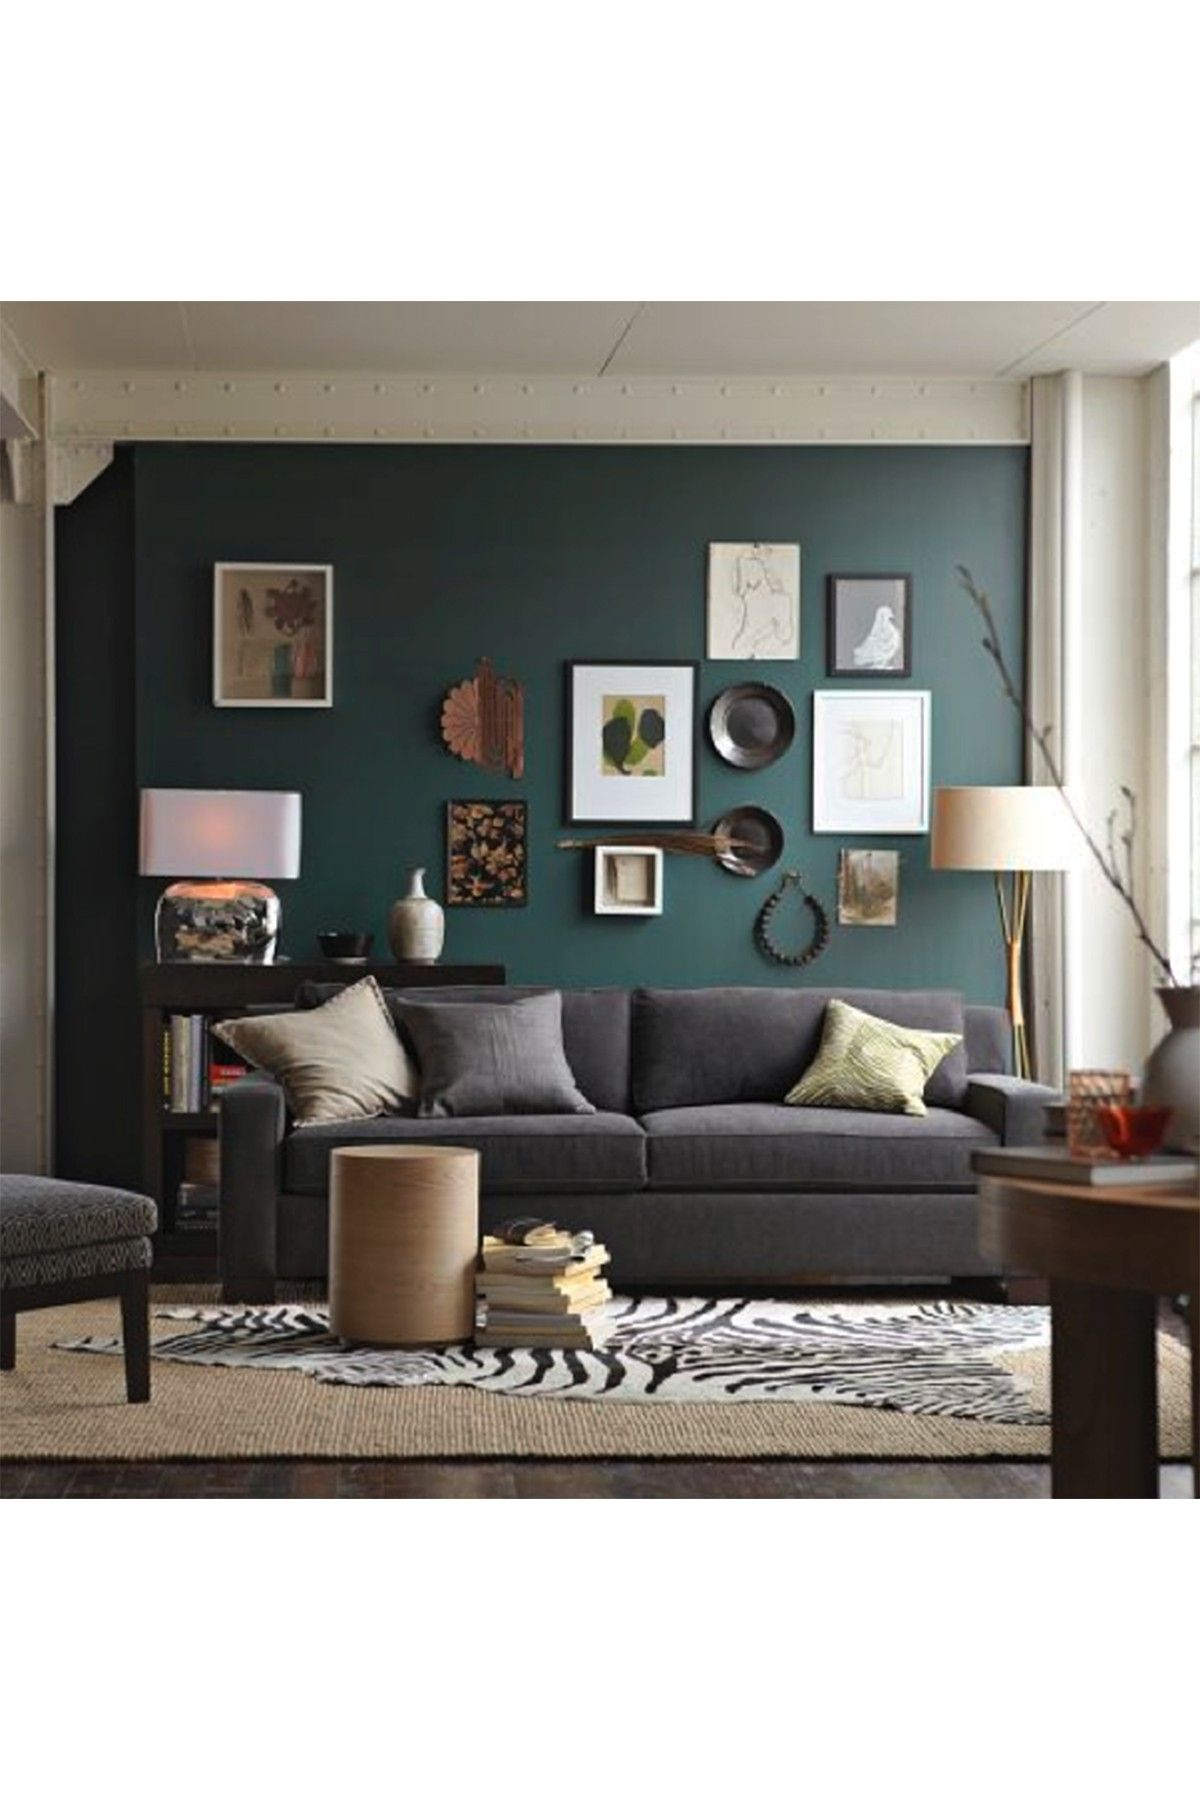 Ten colorful ways to decorate your home without paint home